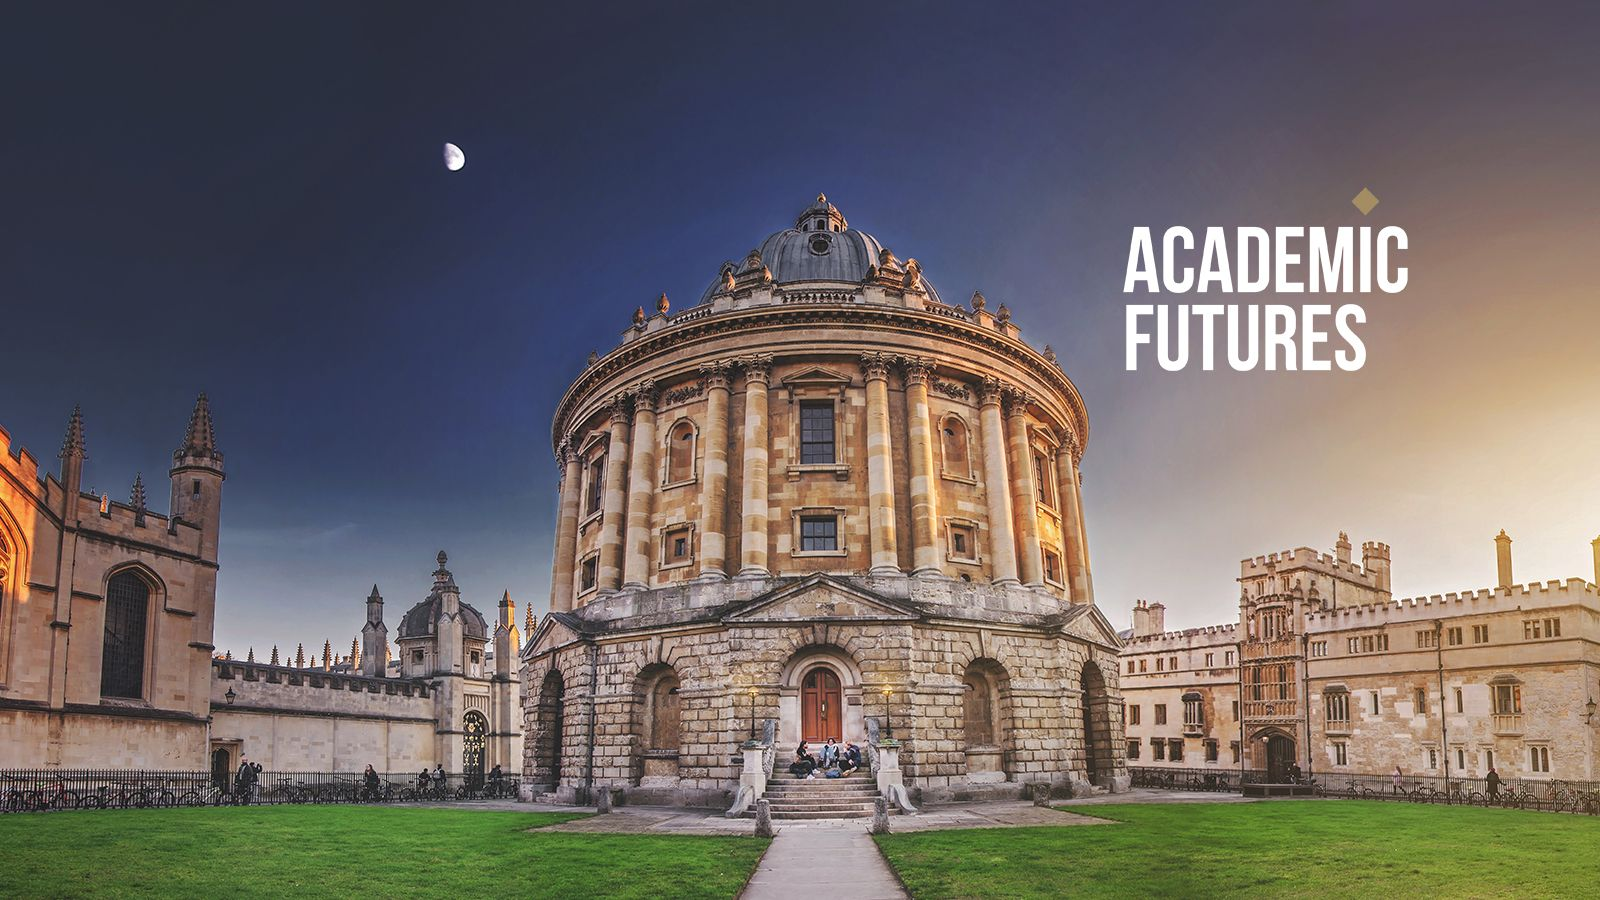 Radcliffe Camera in Radcliffe Square Oxford at dawn with Academic Futures logo